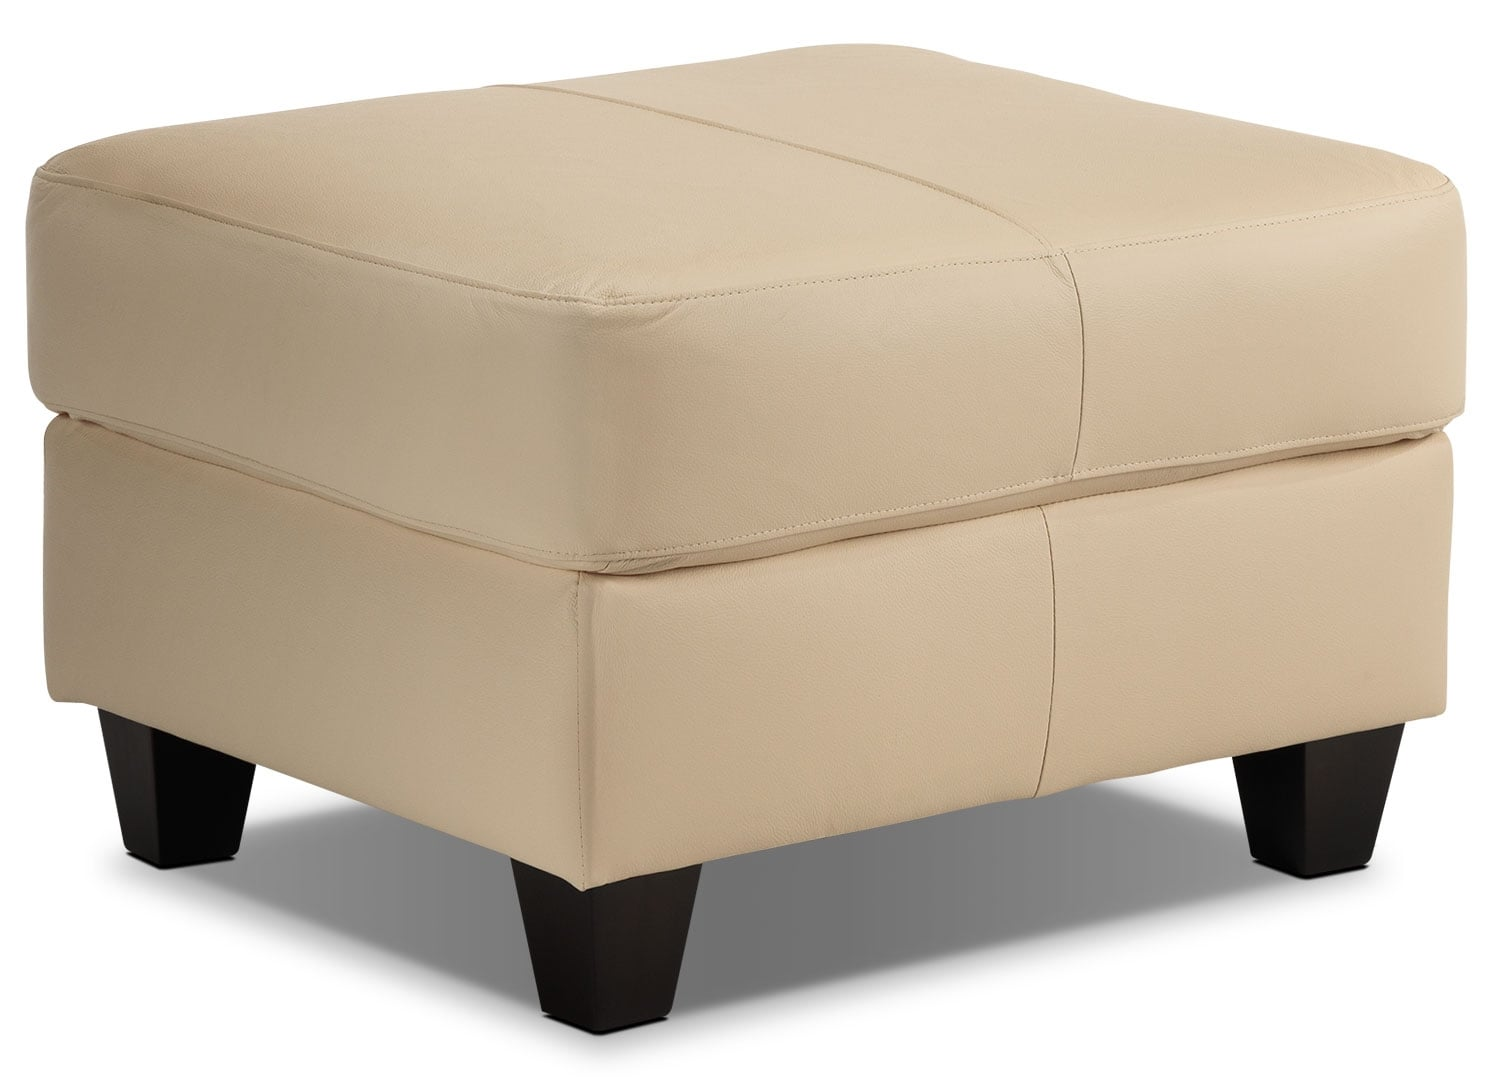 Living Room Furniture - Spencer Ottoman - Light Beige